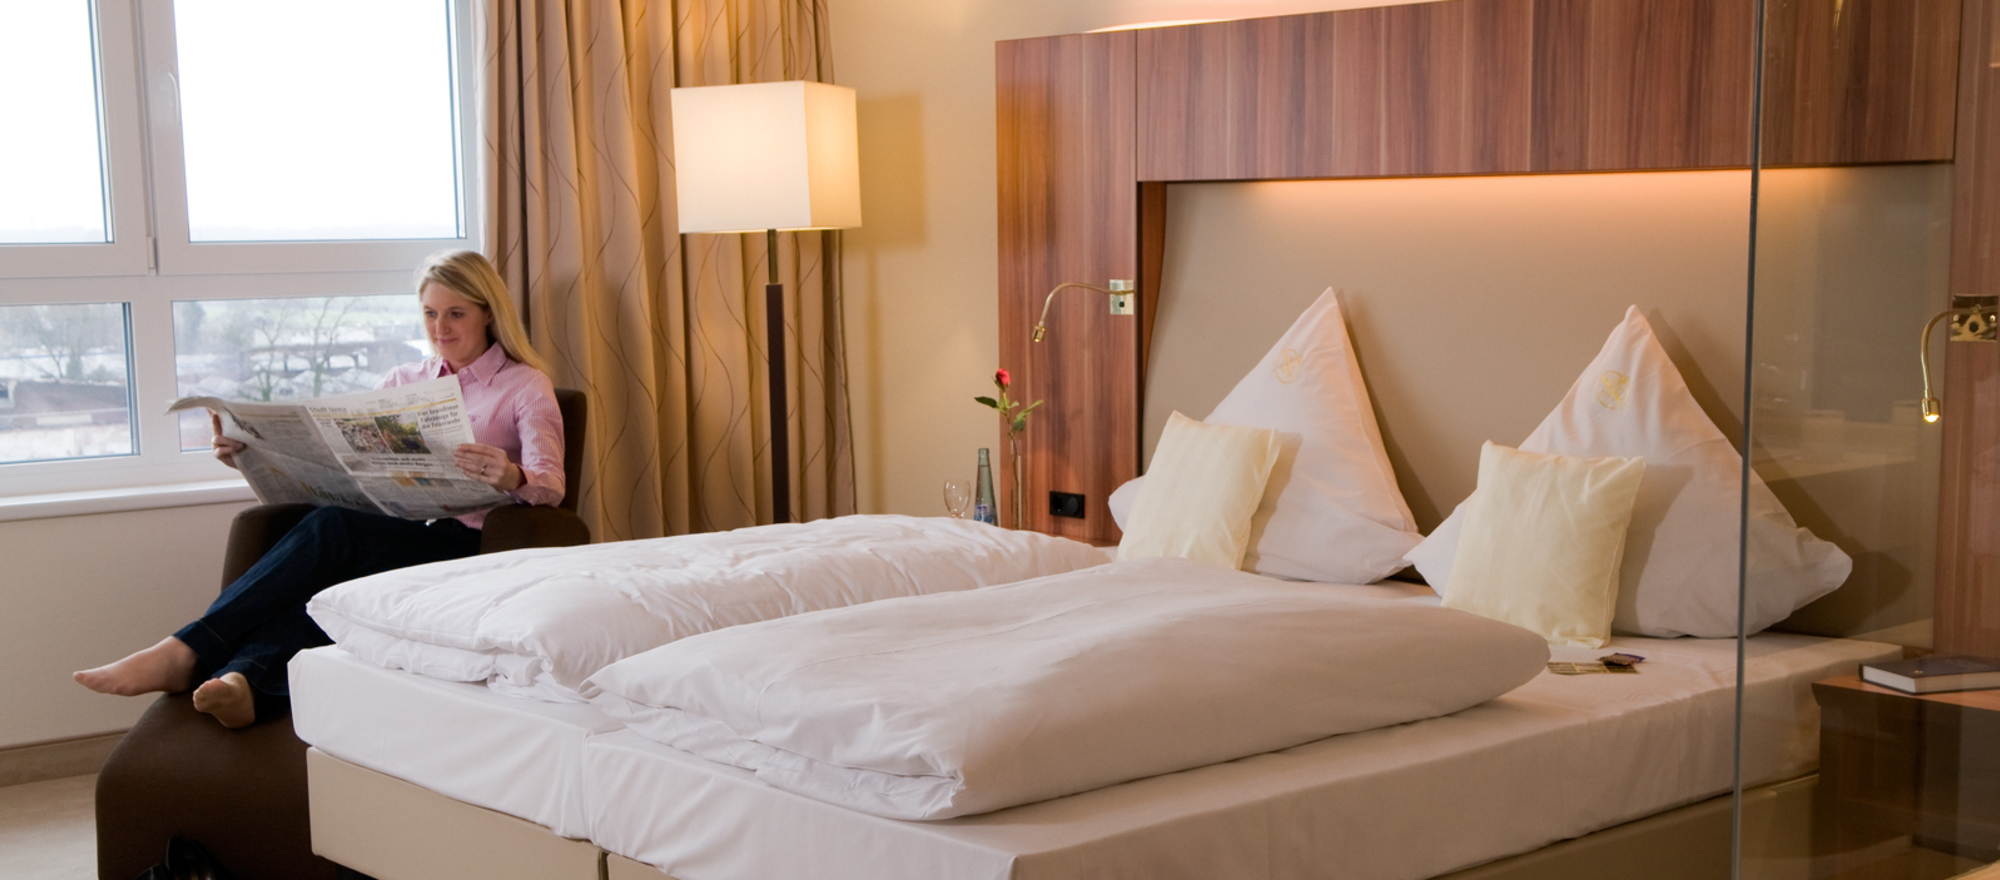 Some rooms are equipped with a heated water bed at the 4-star hotel Ringhotel Katharinen Hof in Unna